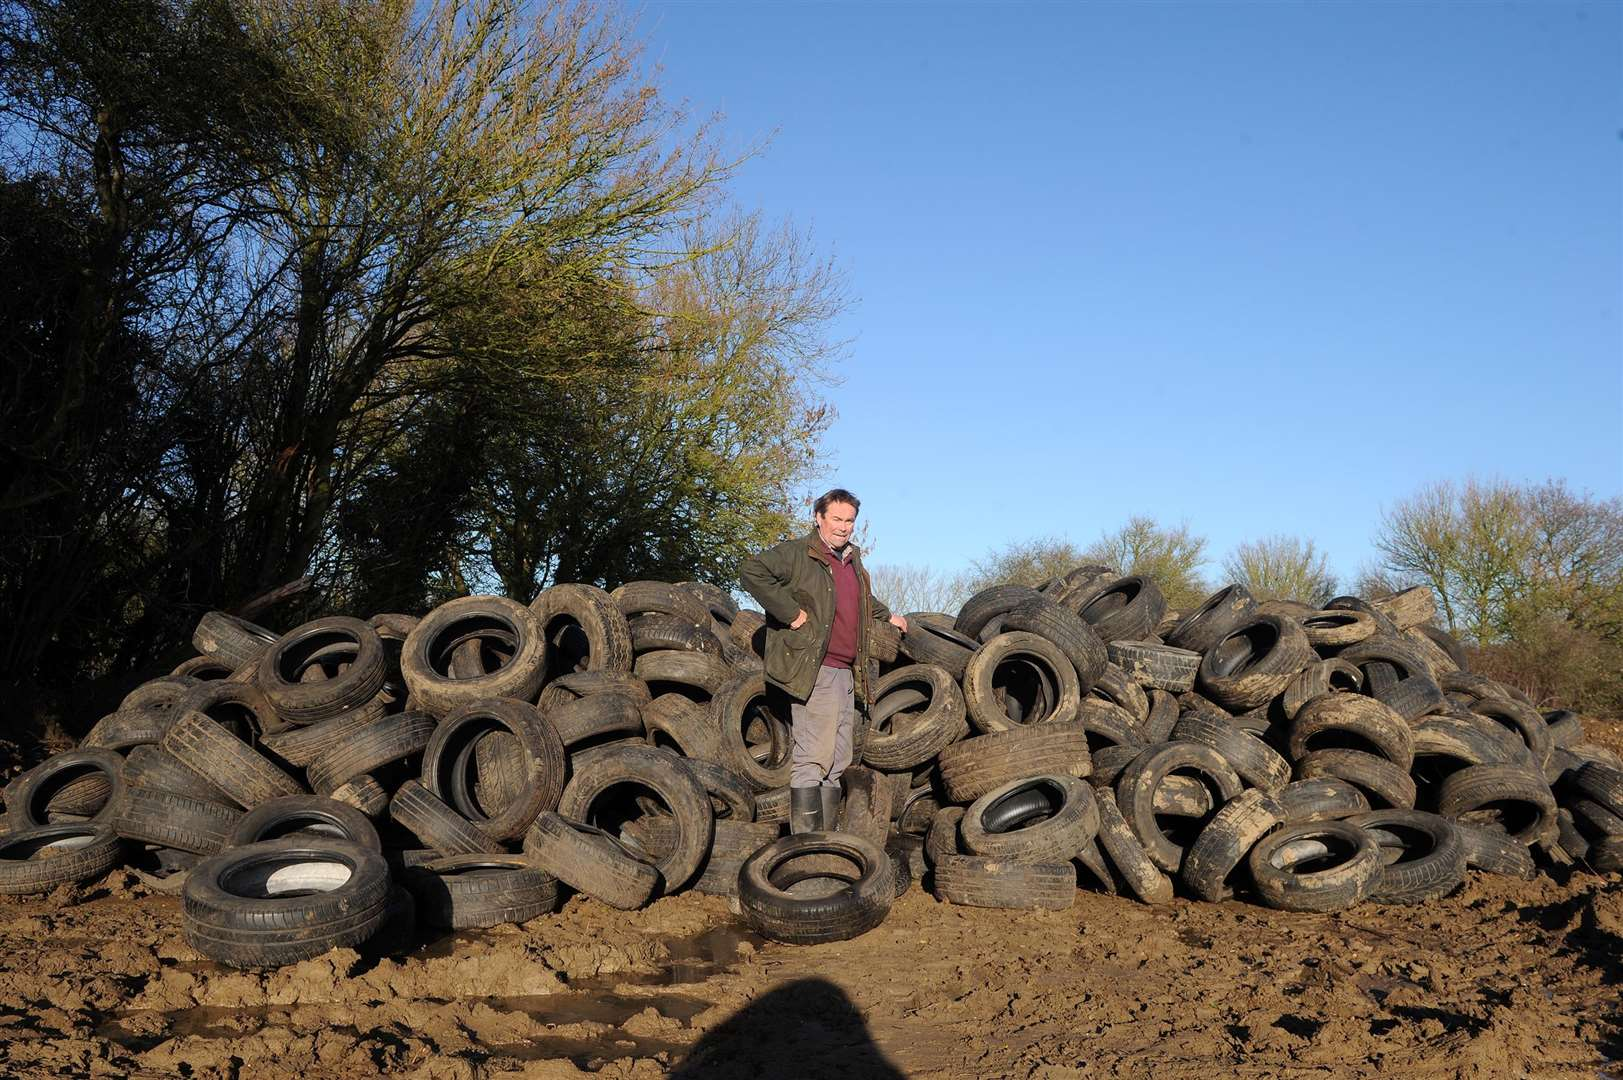 Hundreds of tyres have been fly-tipped on a farm in Milden....Pictured: Farmer Christopher Hawkins standing next to the huge pile of tyres on the farm.....PICTURE: Mecha Morton... (6791073)